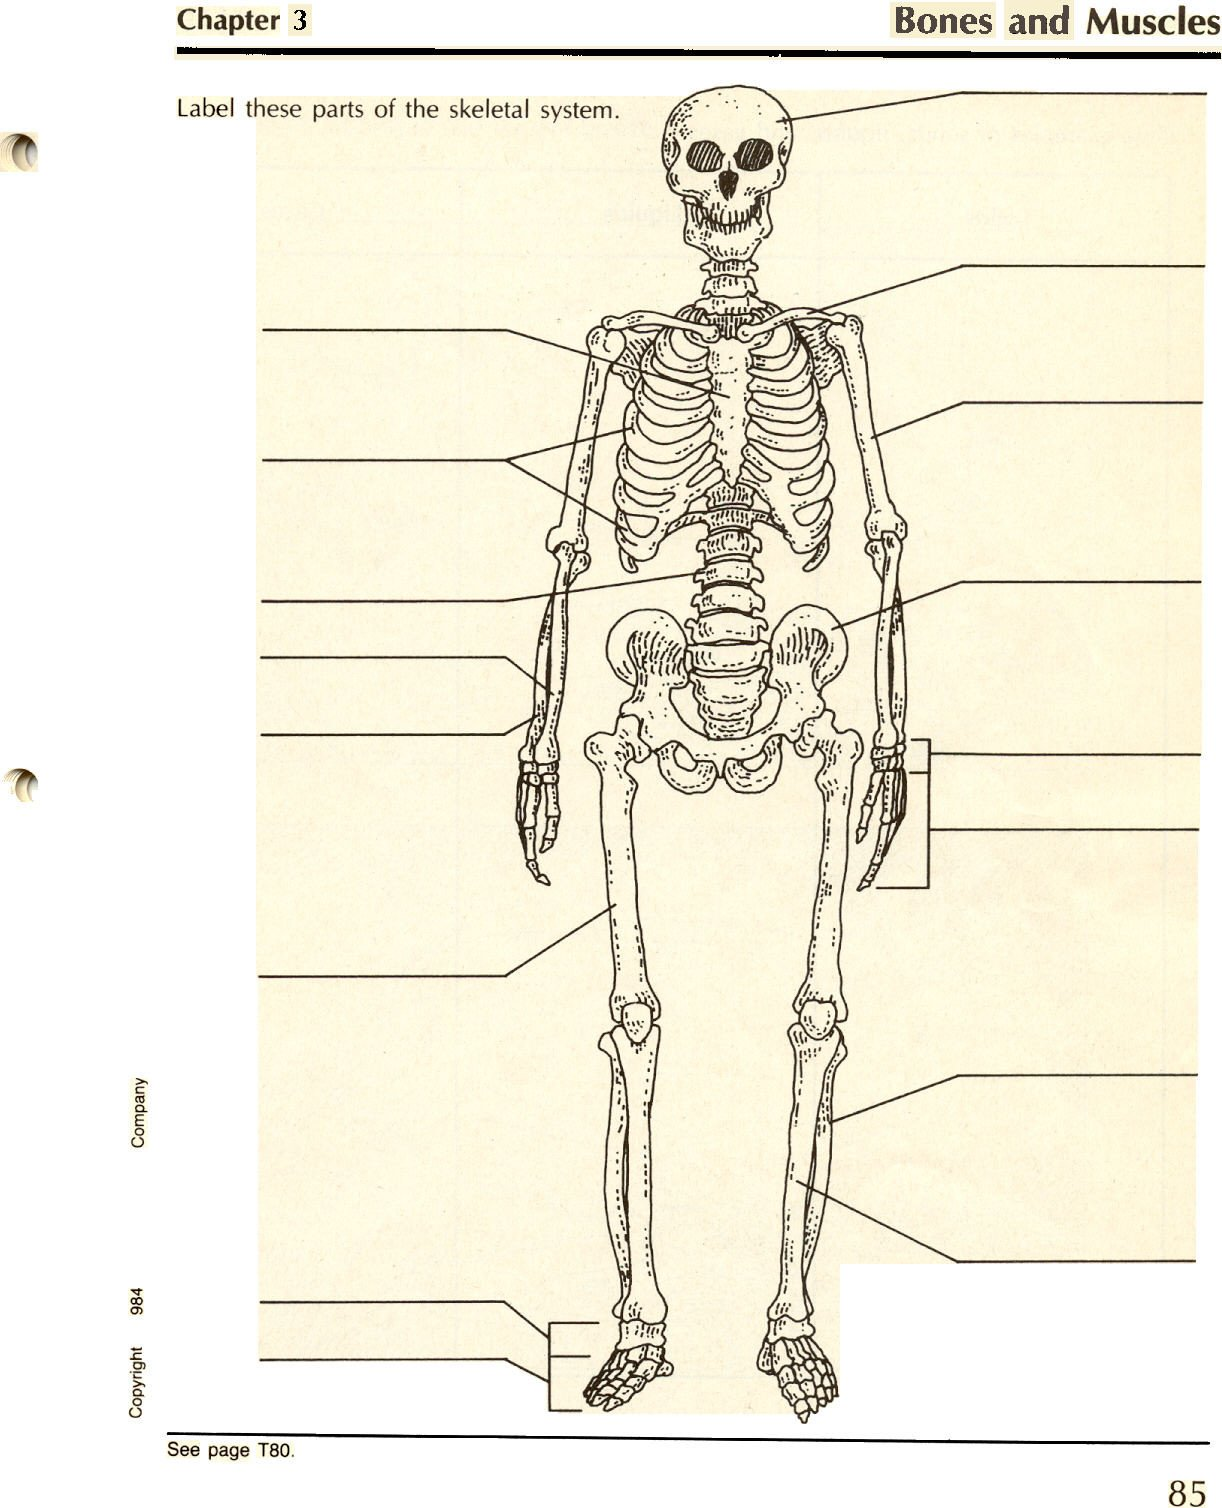 Blank Skeletal System Worksheet Blank Skeletal System Diagram Human Body Anatomy